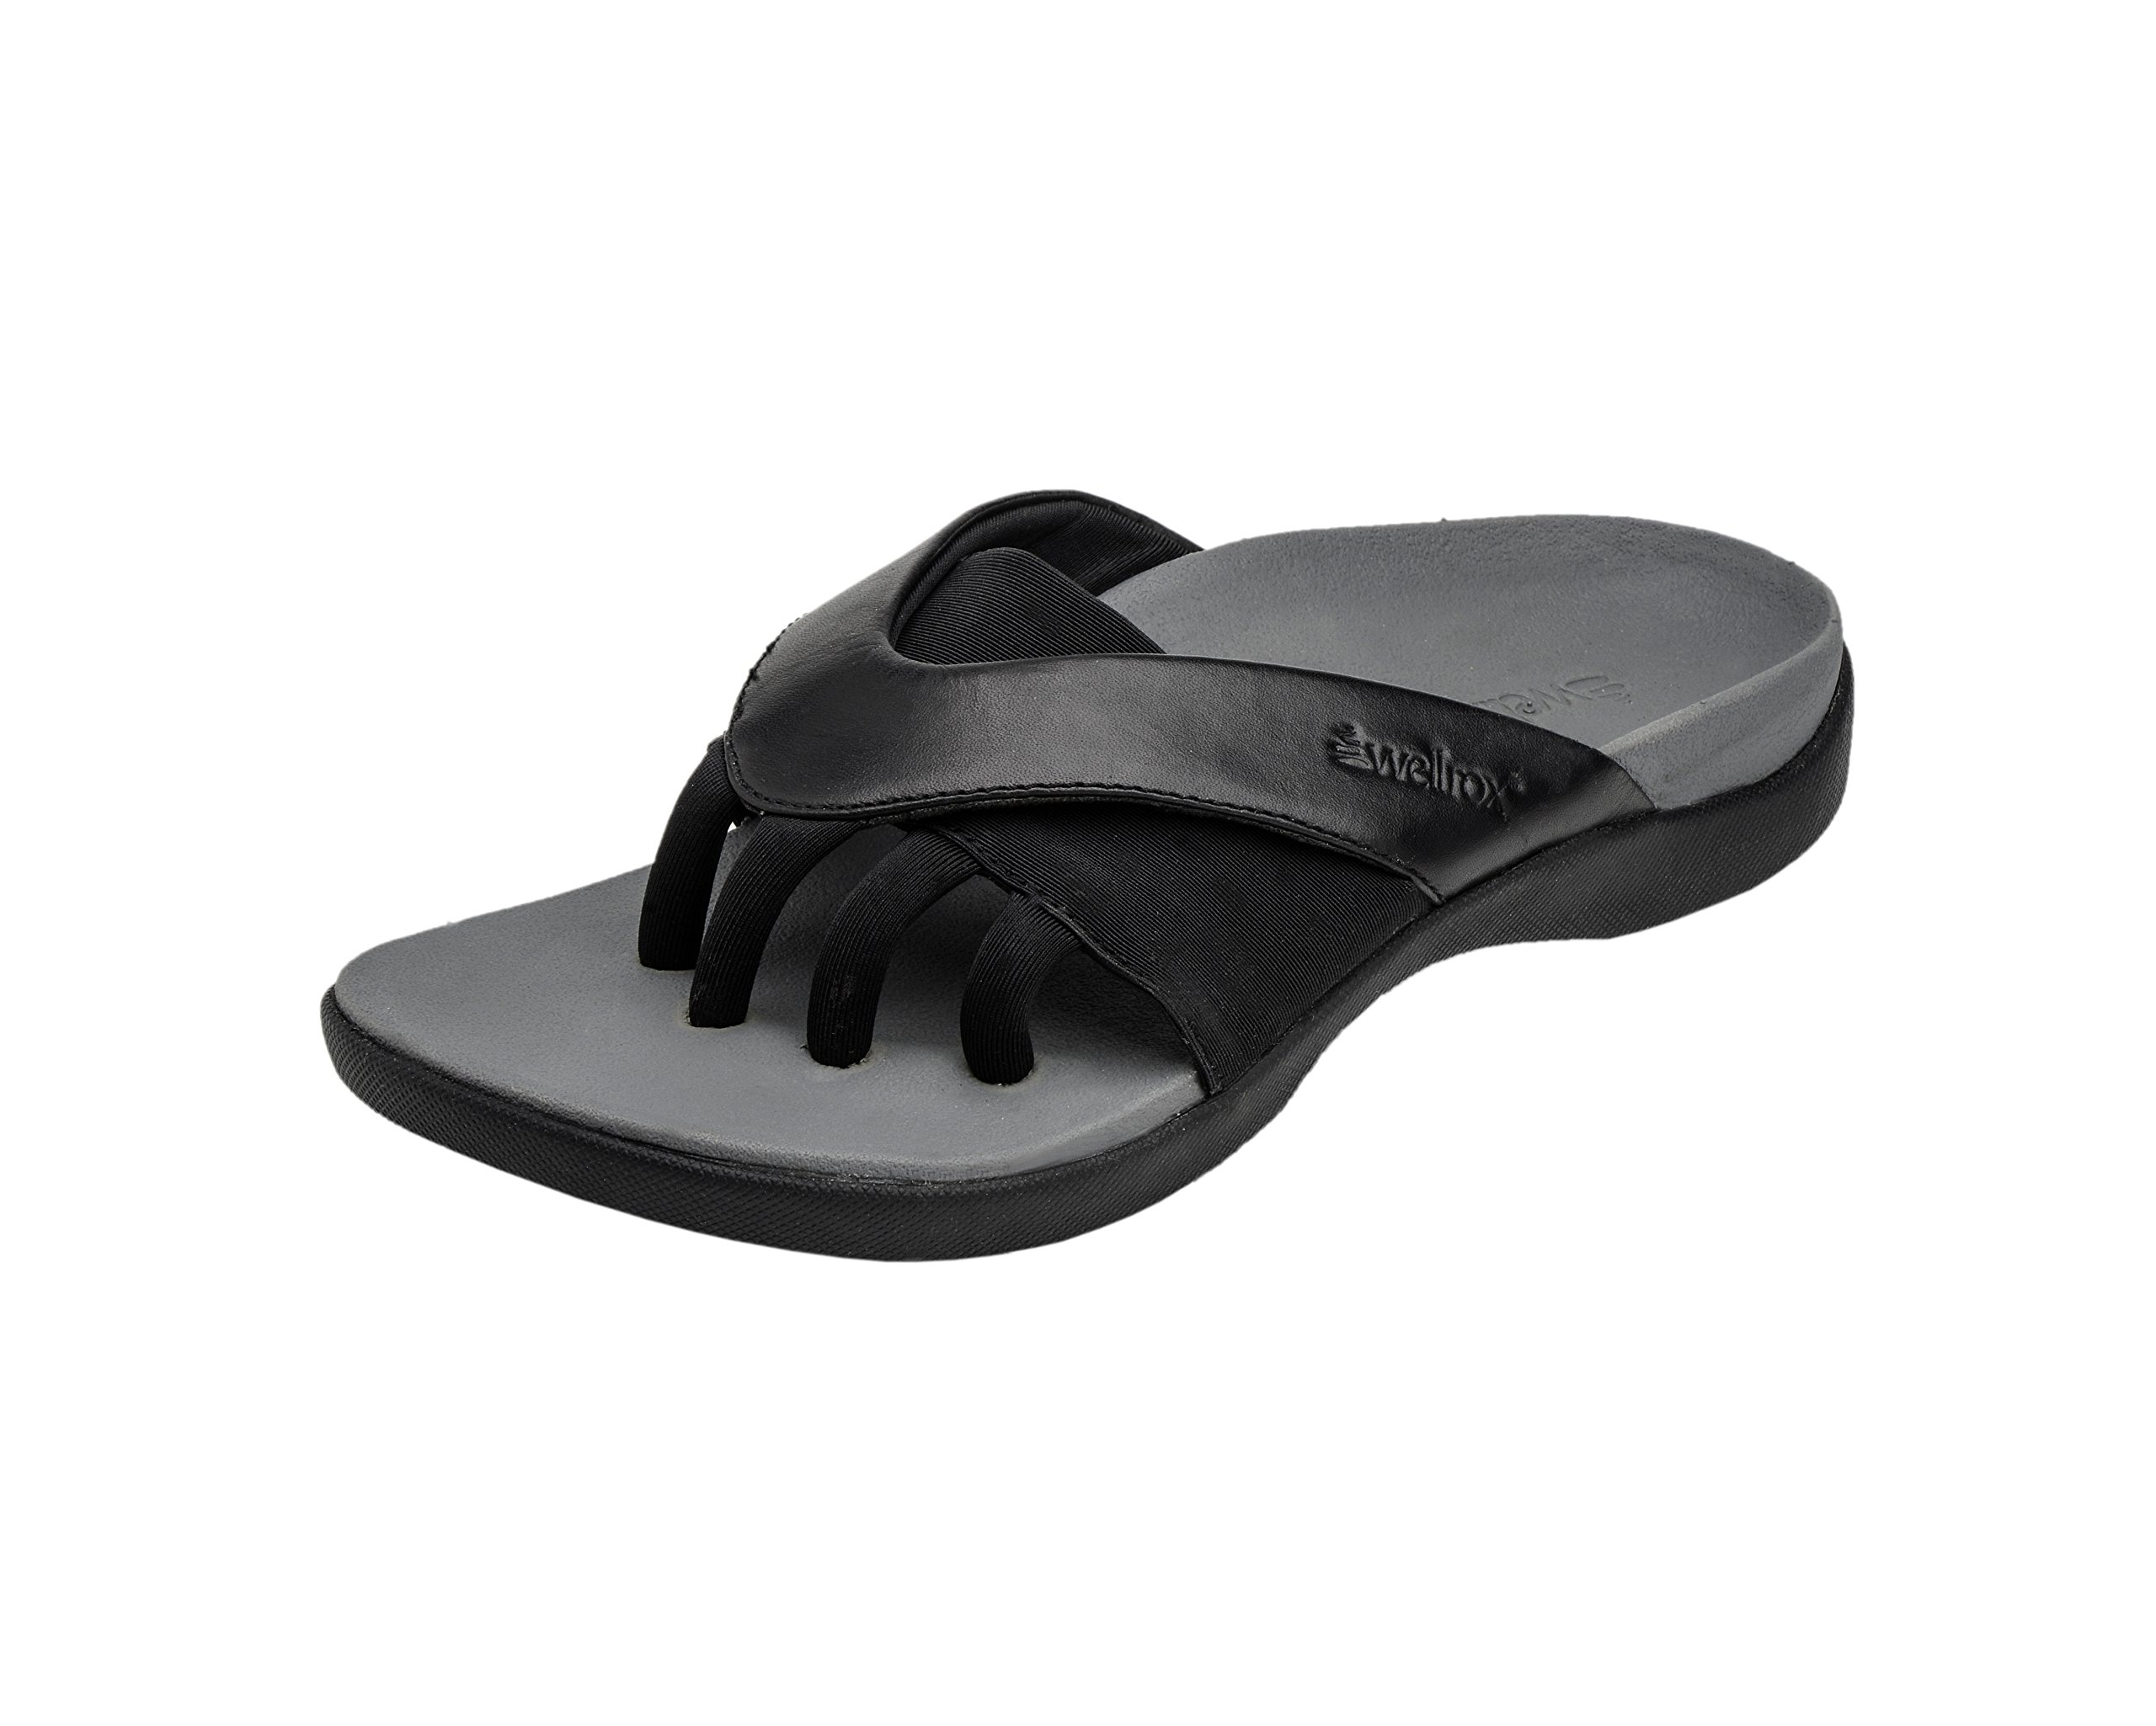 Wellrox Women's Evo-Grasp Black Casual Sandal 11